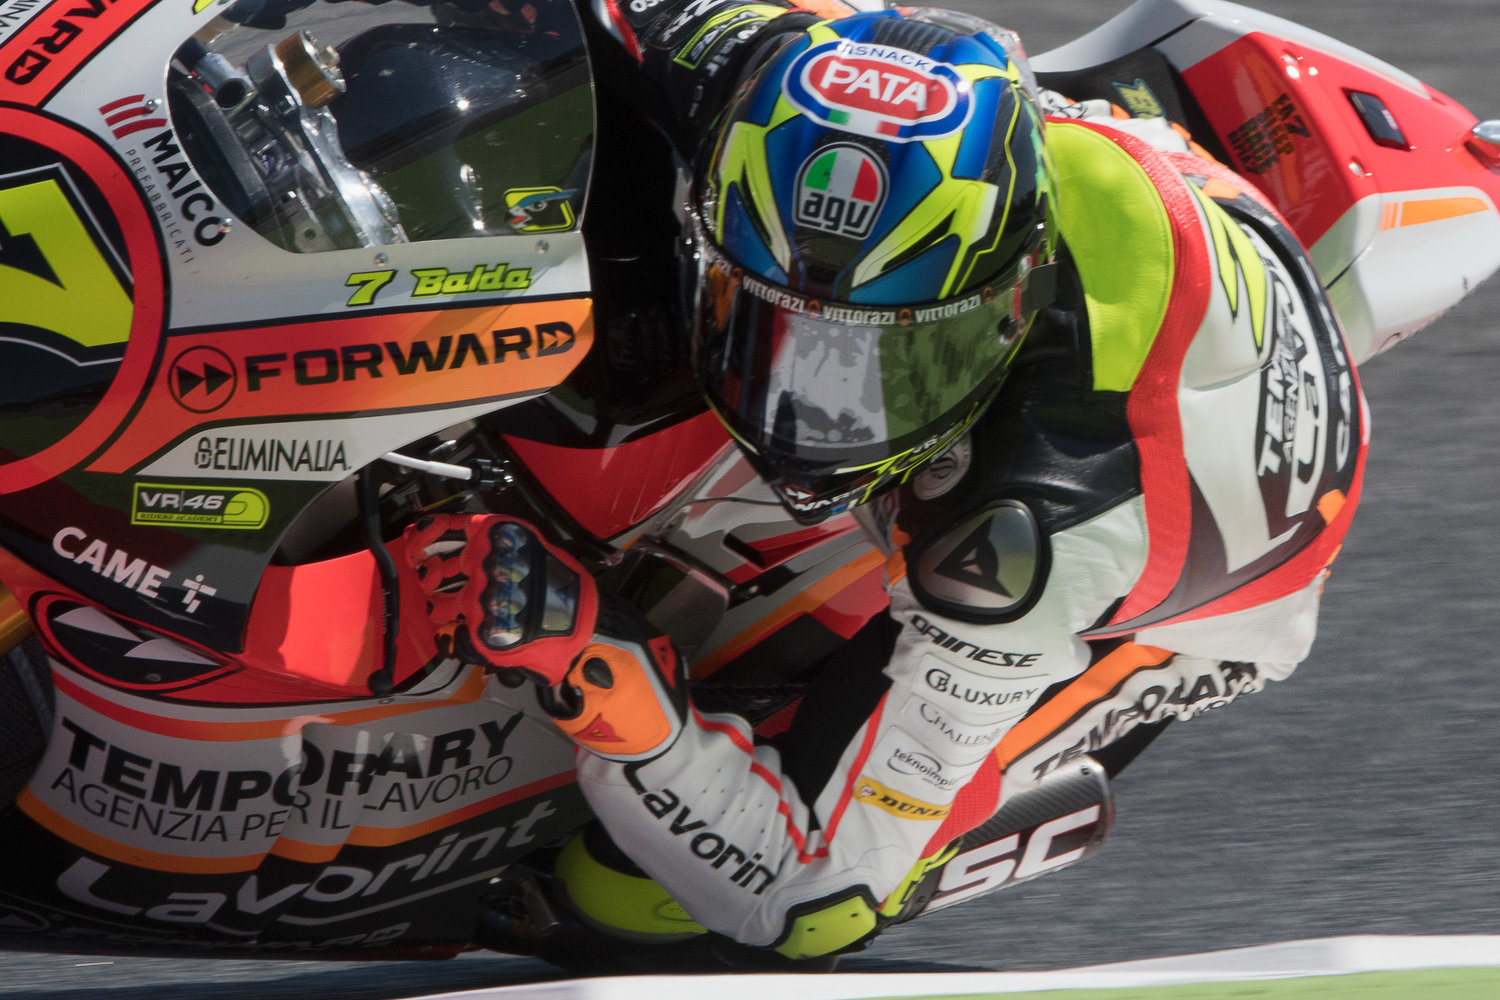 Baldassarri secures superb front row start in Montmelò, Marini withdraws from the GP